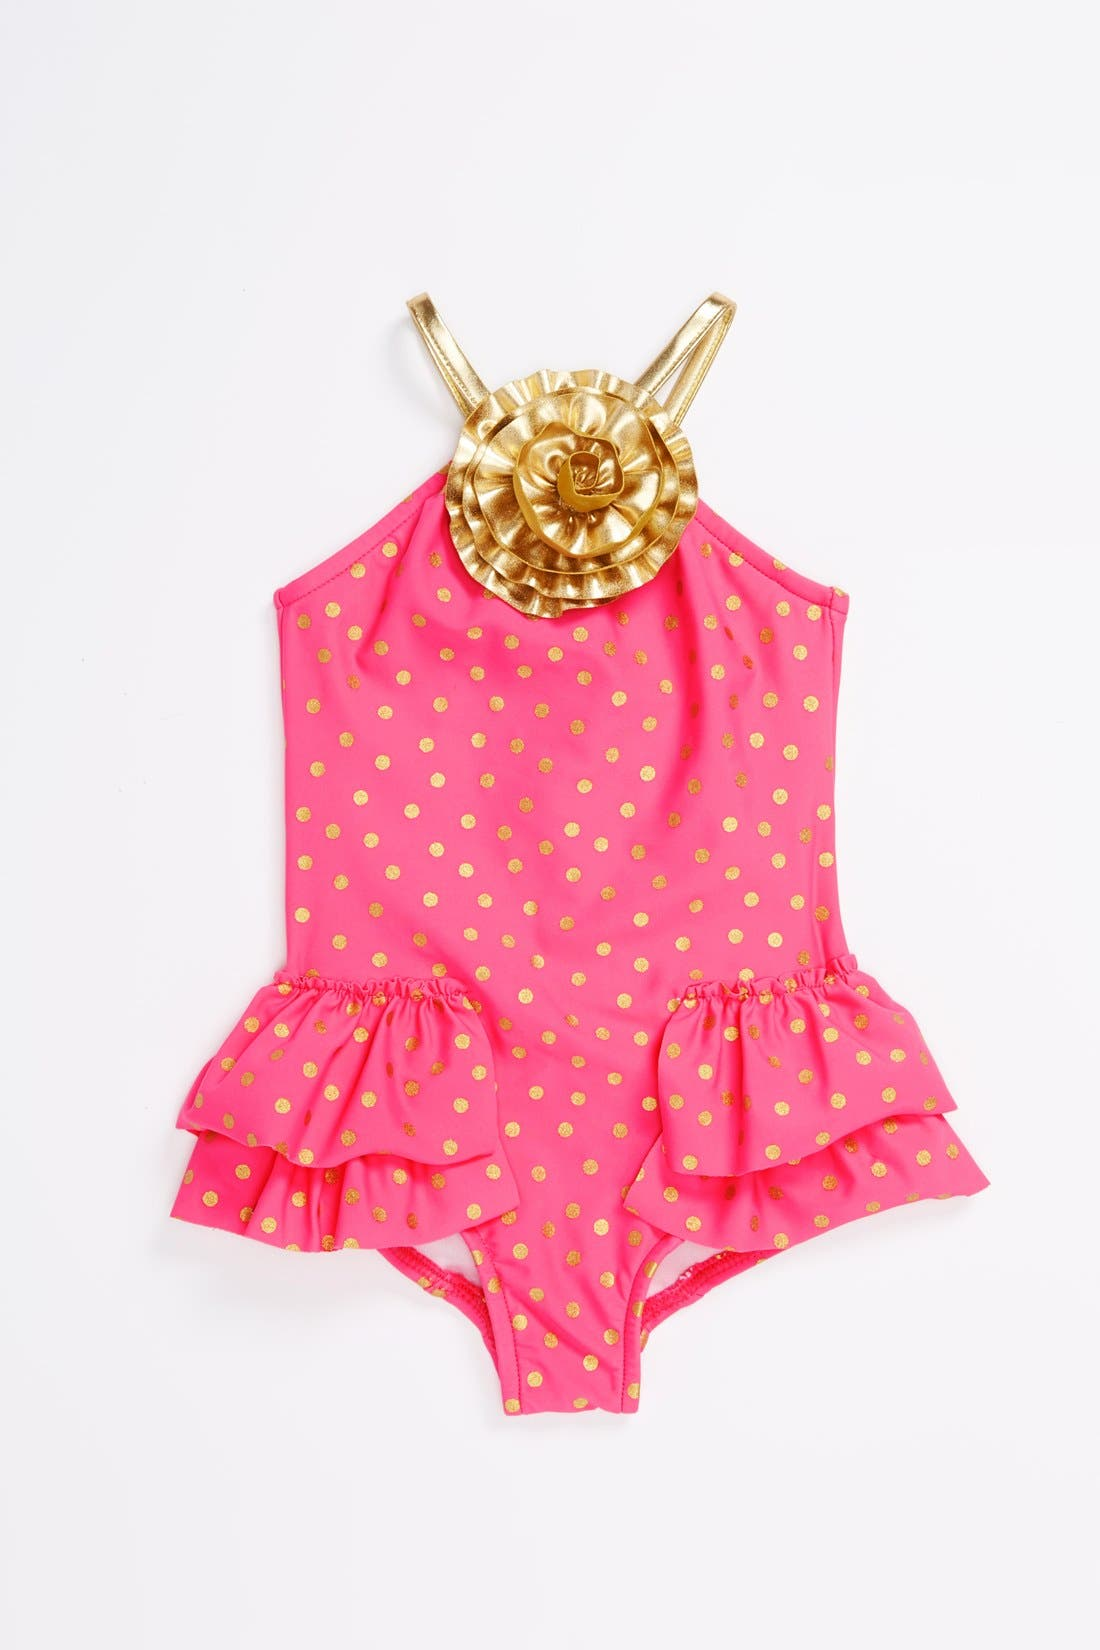 Alternate Image 1 Selected - Love U Lots One-Piece Swimsuit (Toddler Girls)(Online Only)